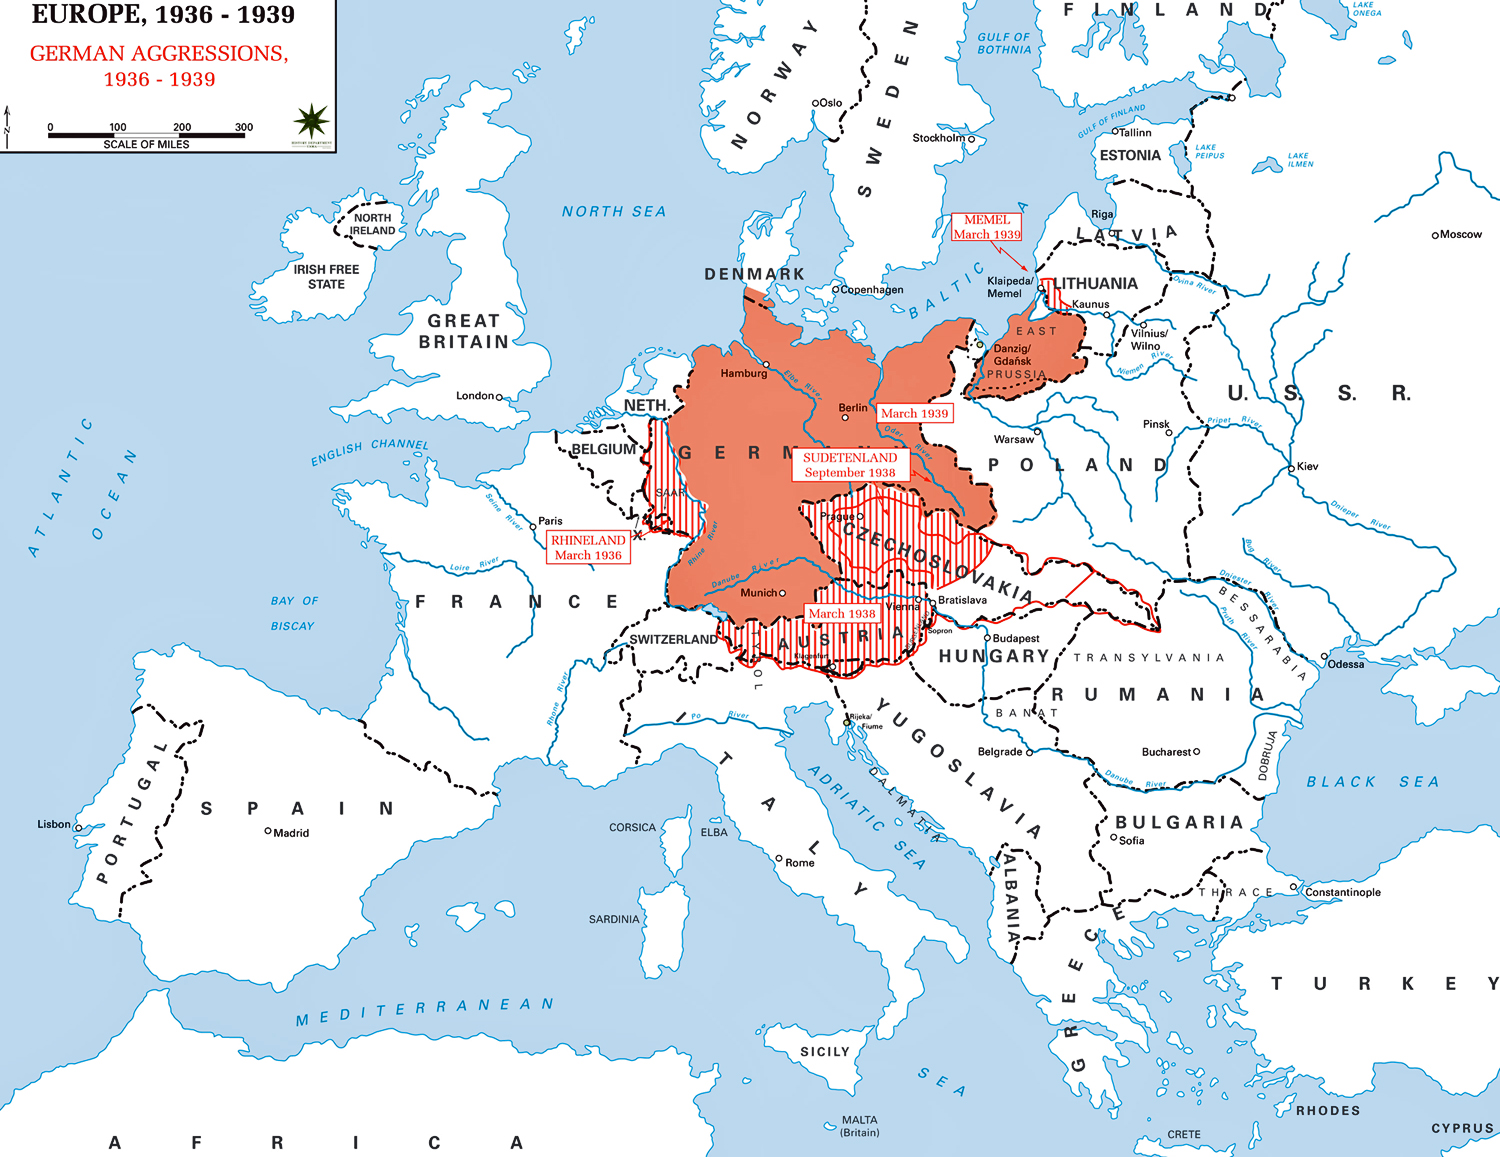 map of europe 1936 1939 german aggressions